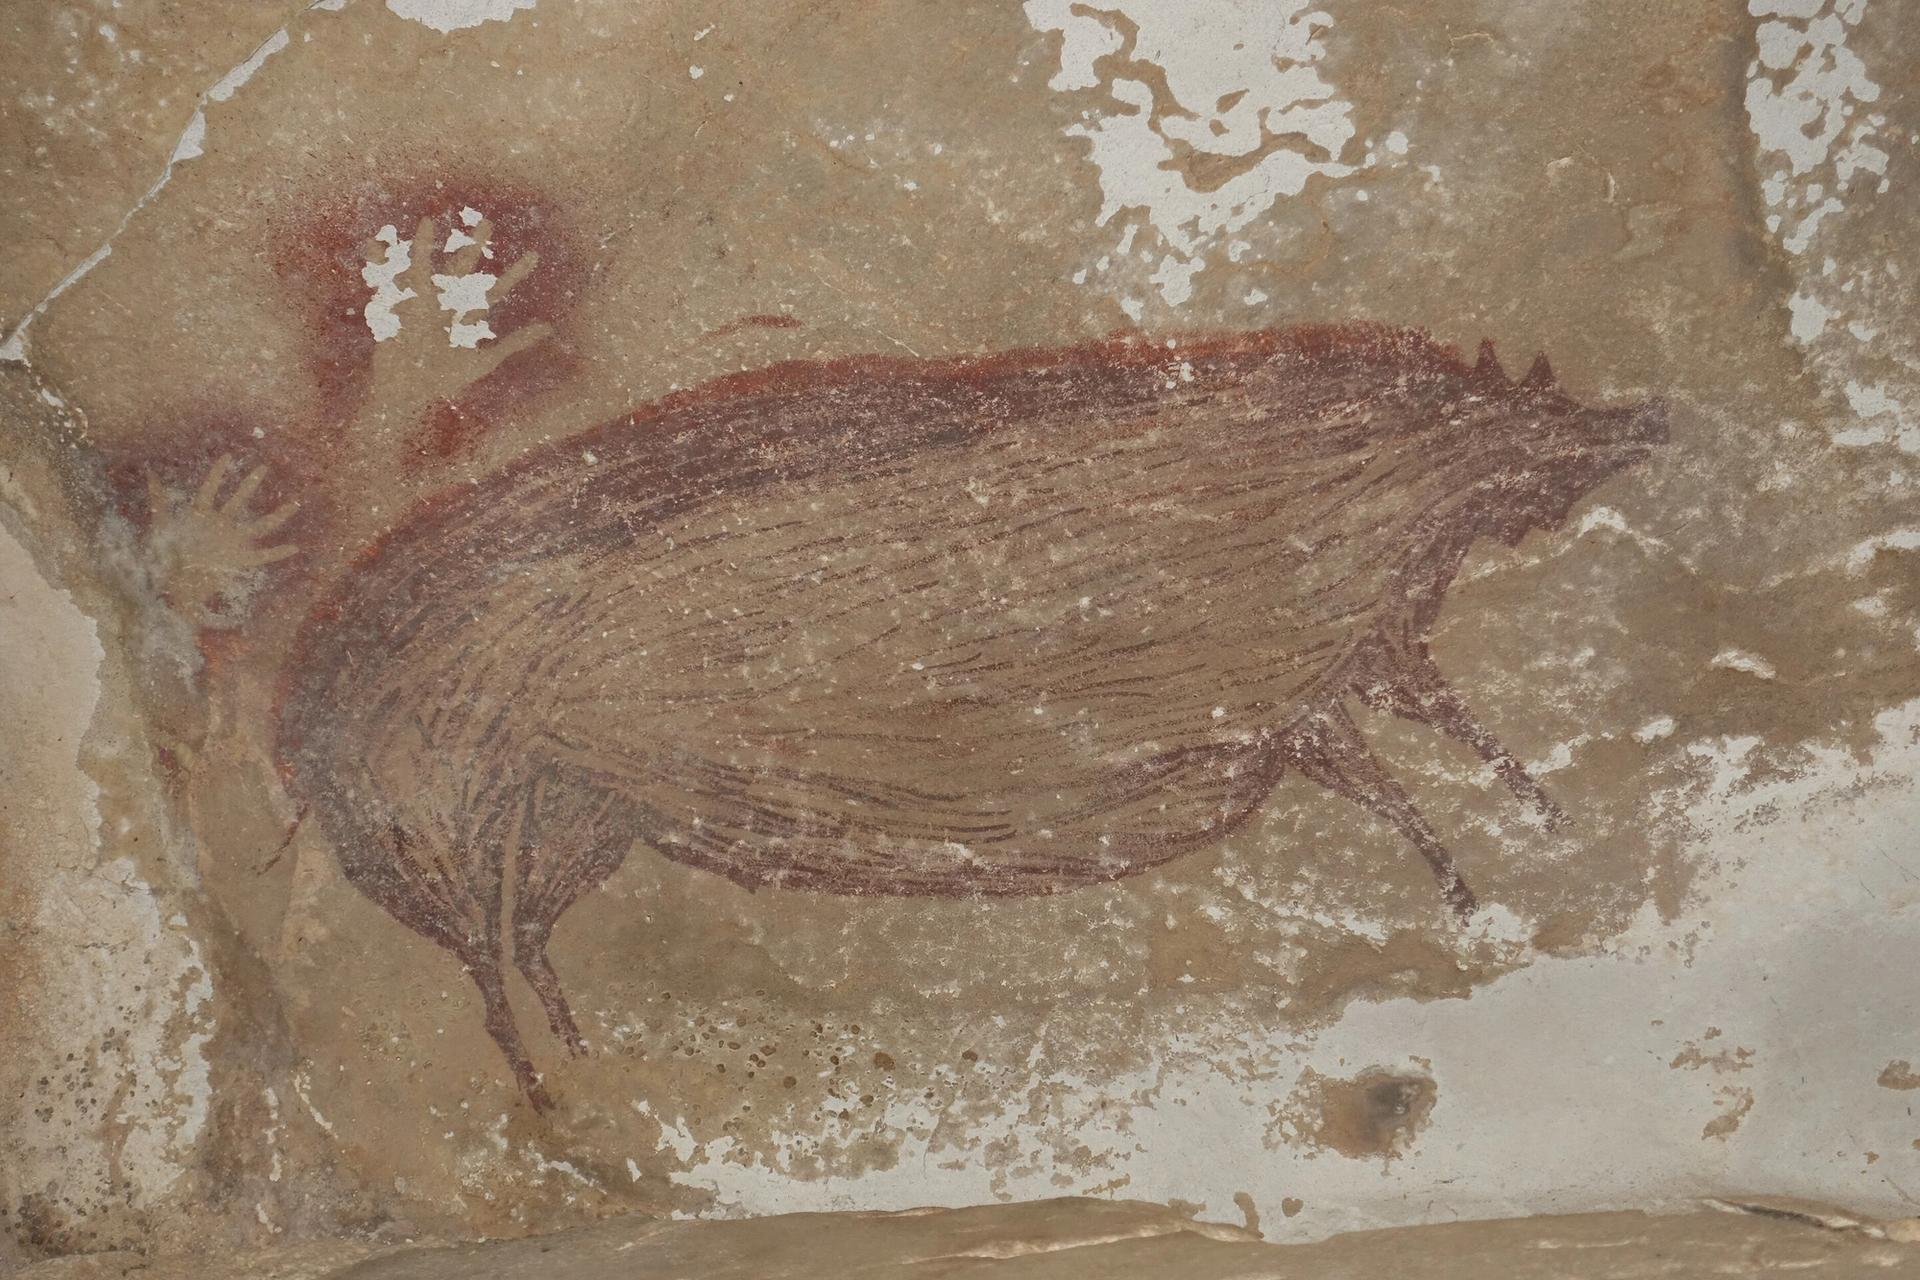 The pig painting at Leang Tedongnge cave, Sulawesi © A. A. Oktaviana, ARKENAS/Griffith University.